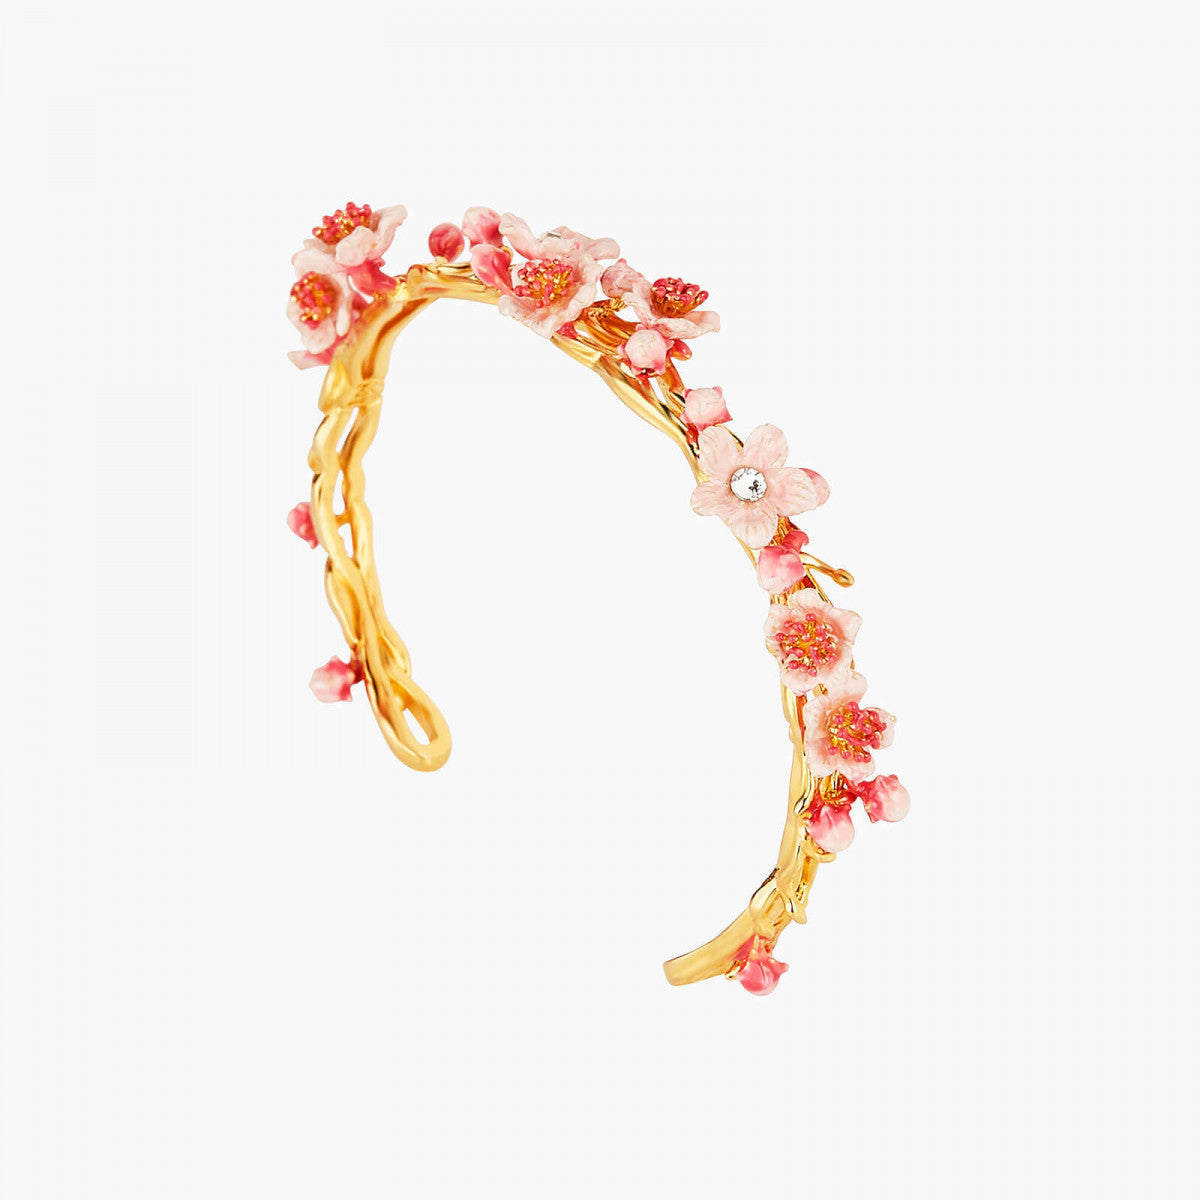 Japanese Cherry Blossom and golden branch bangle bracelet